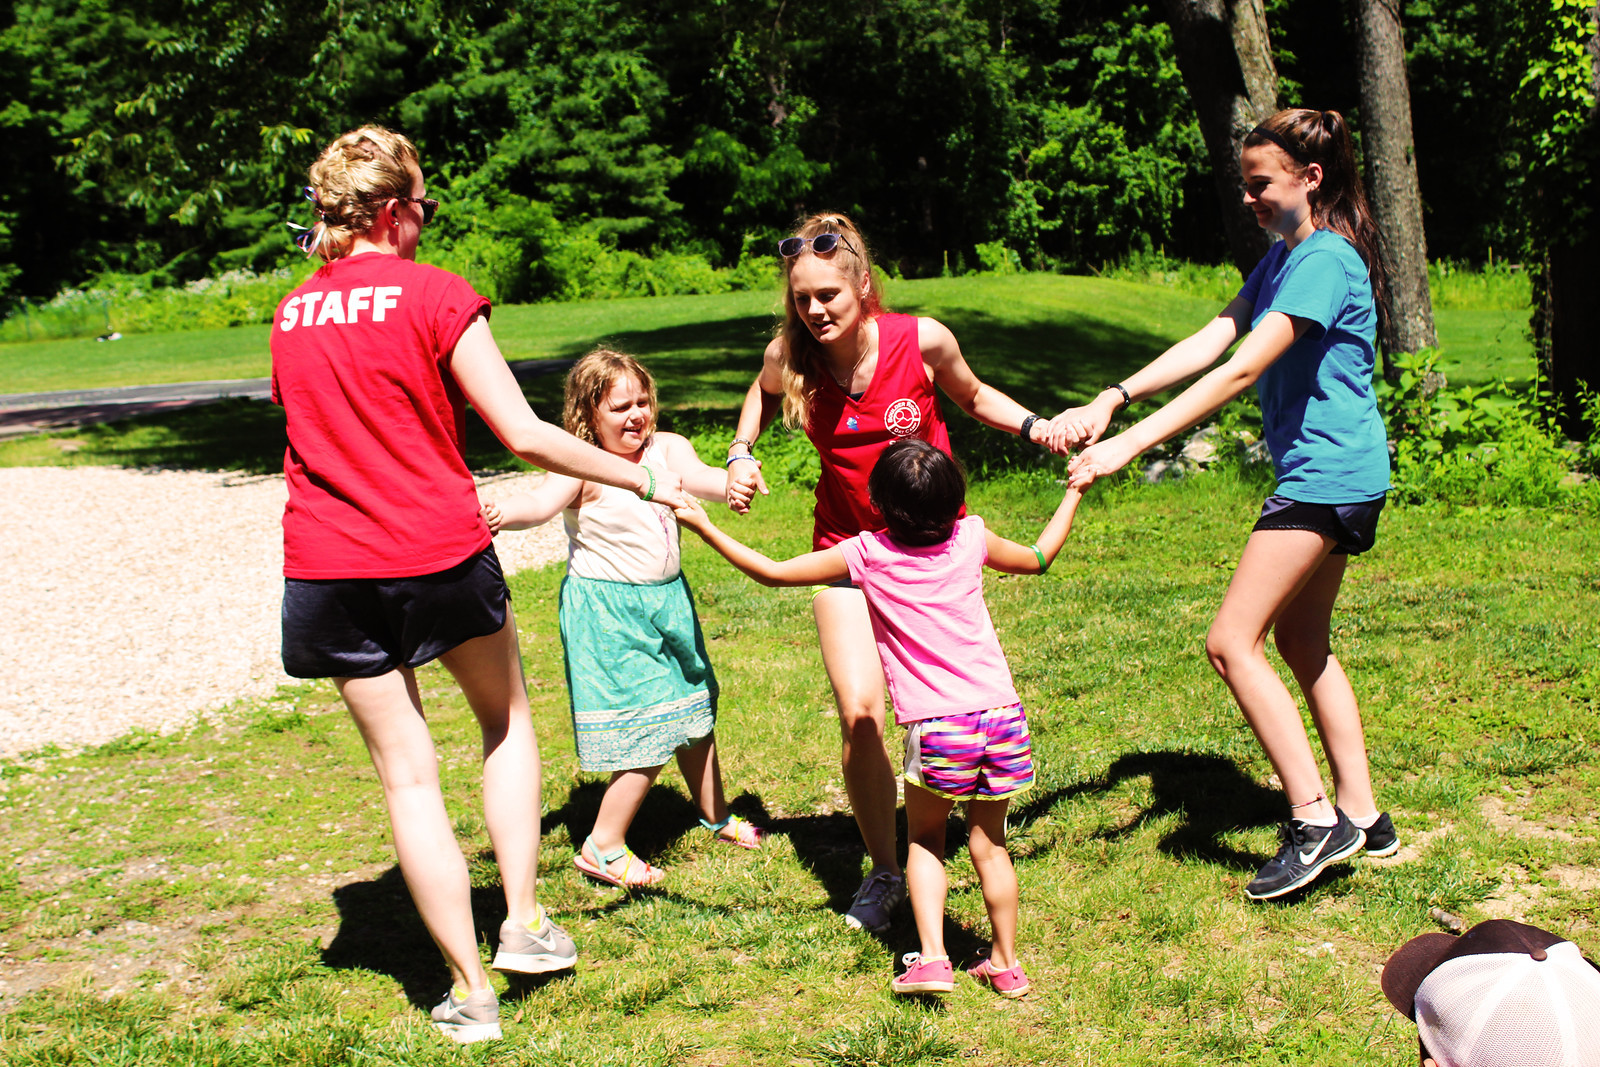 Working as a Camp Counselor at Summer Camp